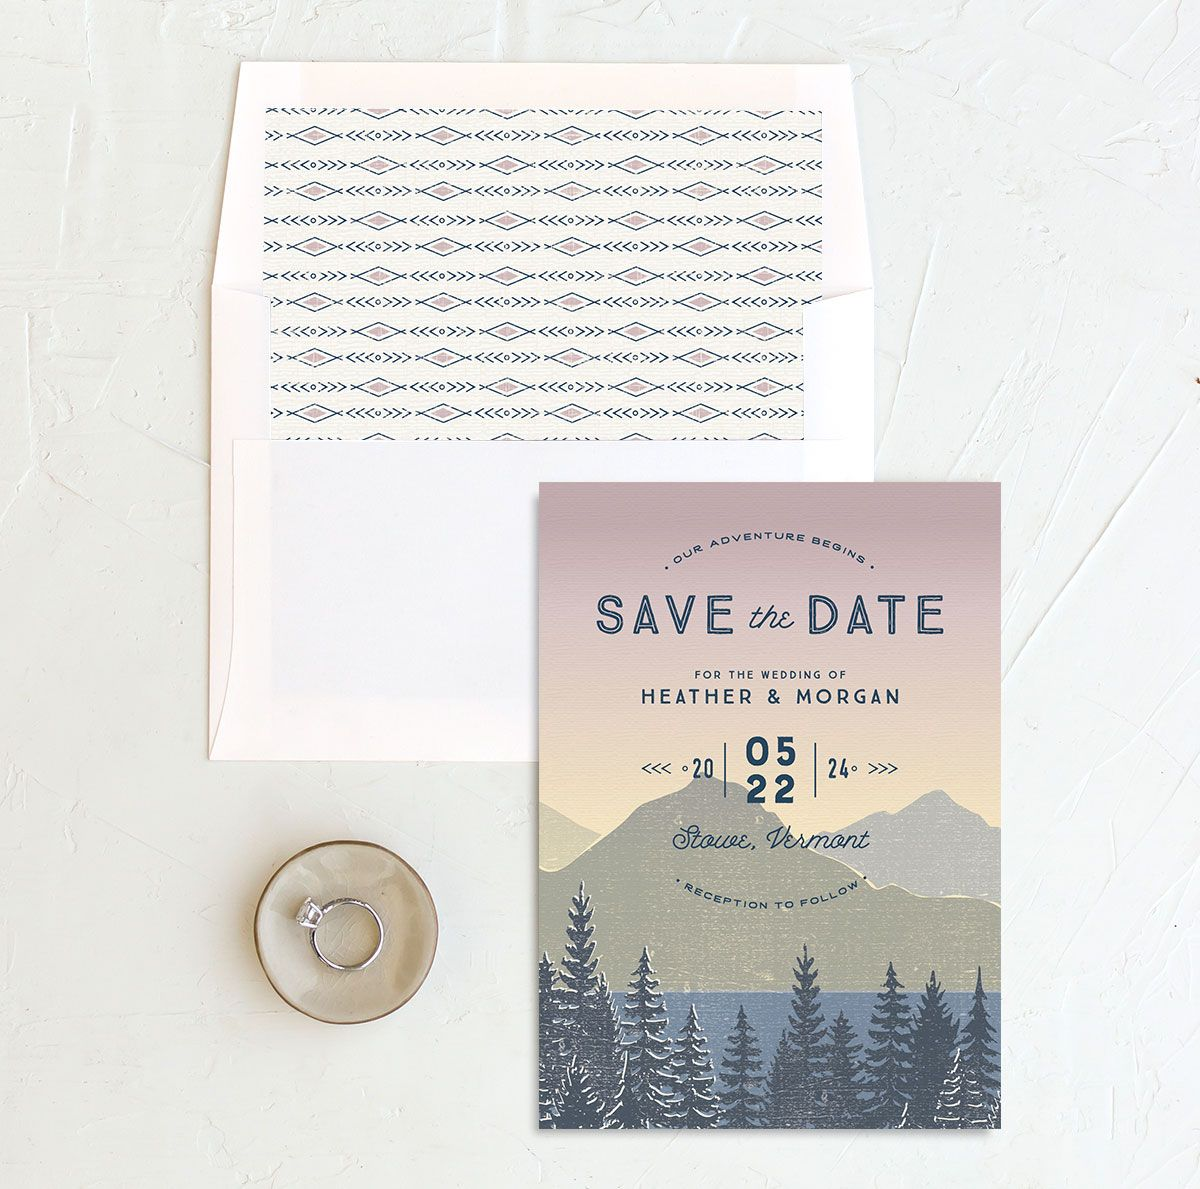 Vintage Mountainside Save the Date and envelope liner in pink